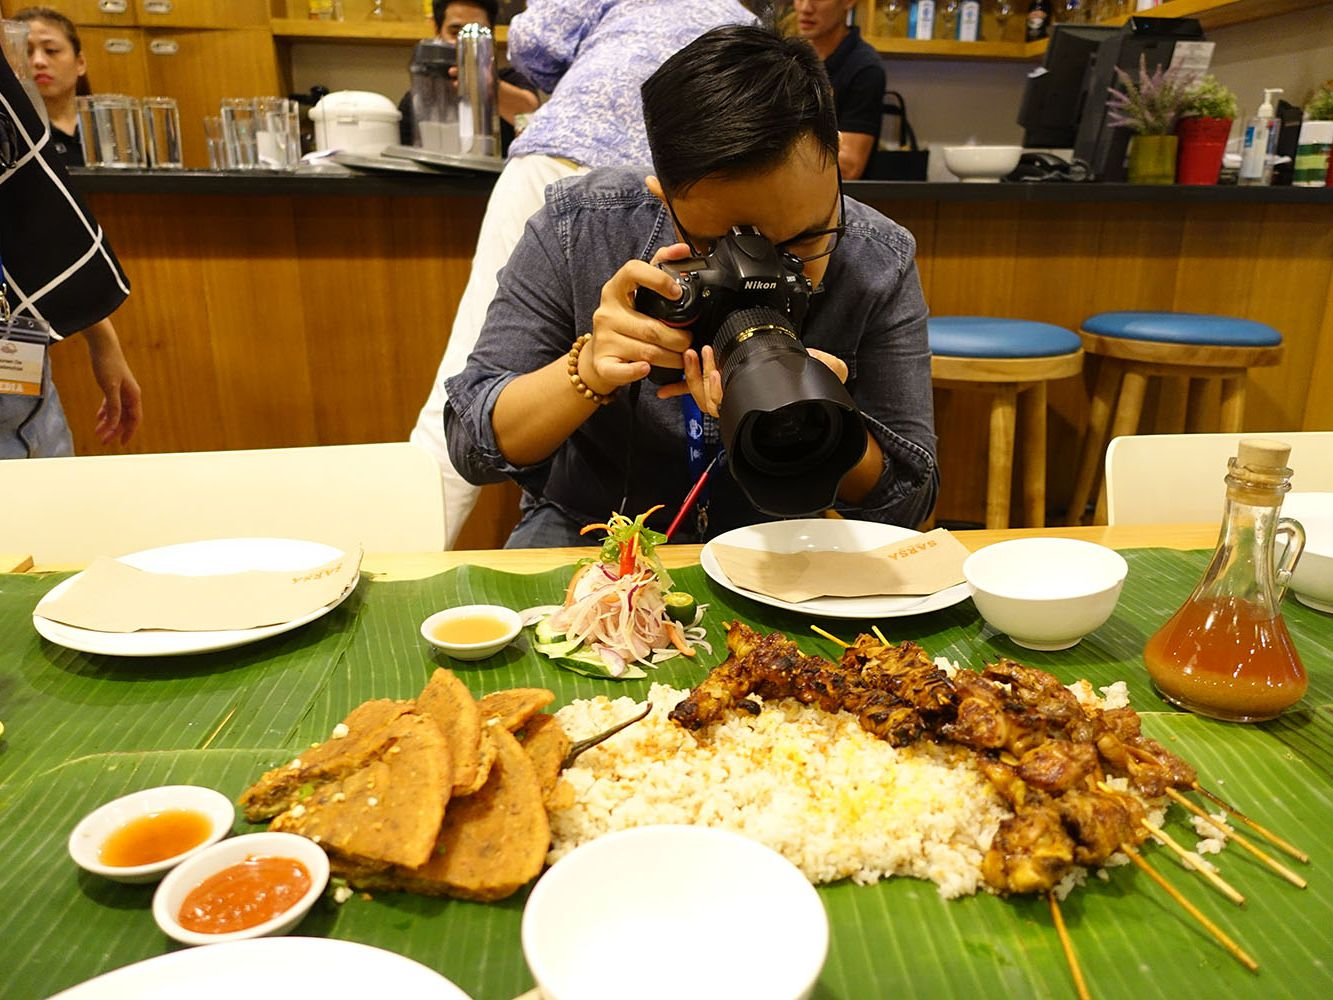 I Survived a 15 Hour Food Frenzy in the Philippines